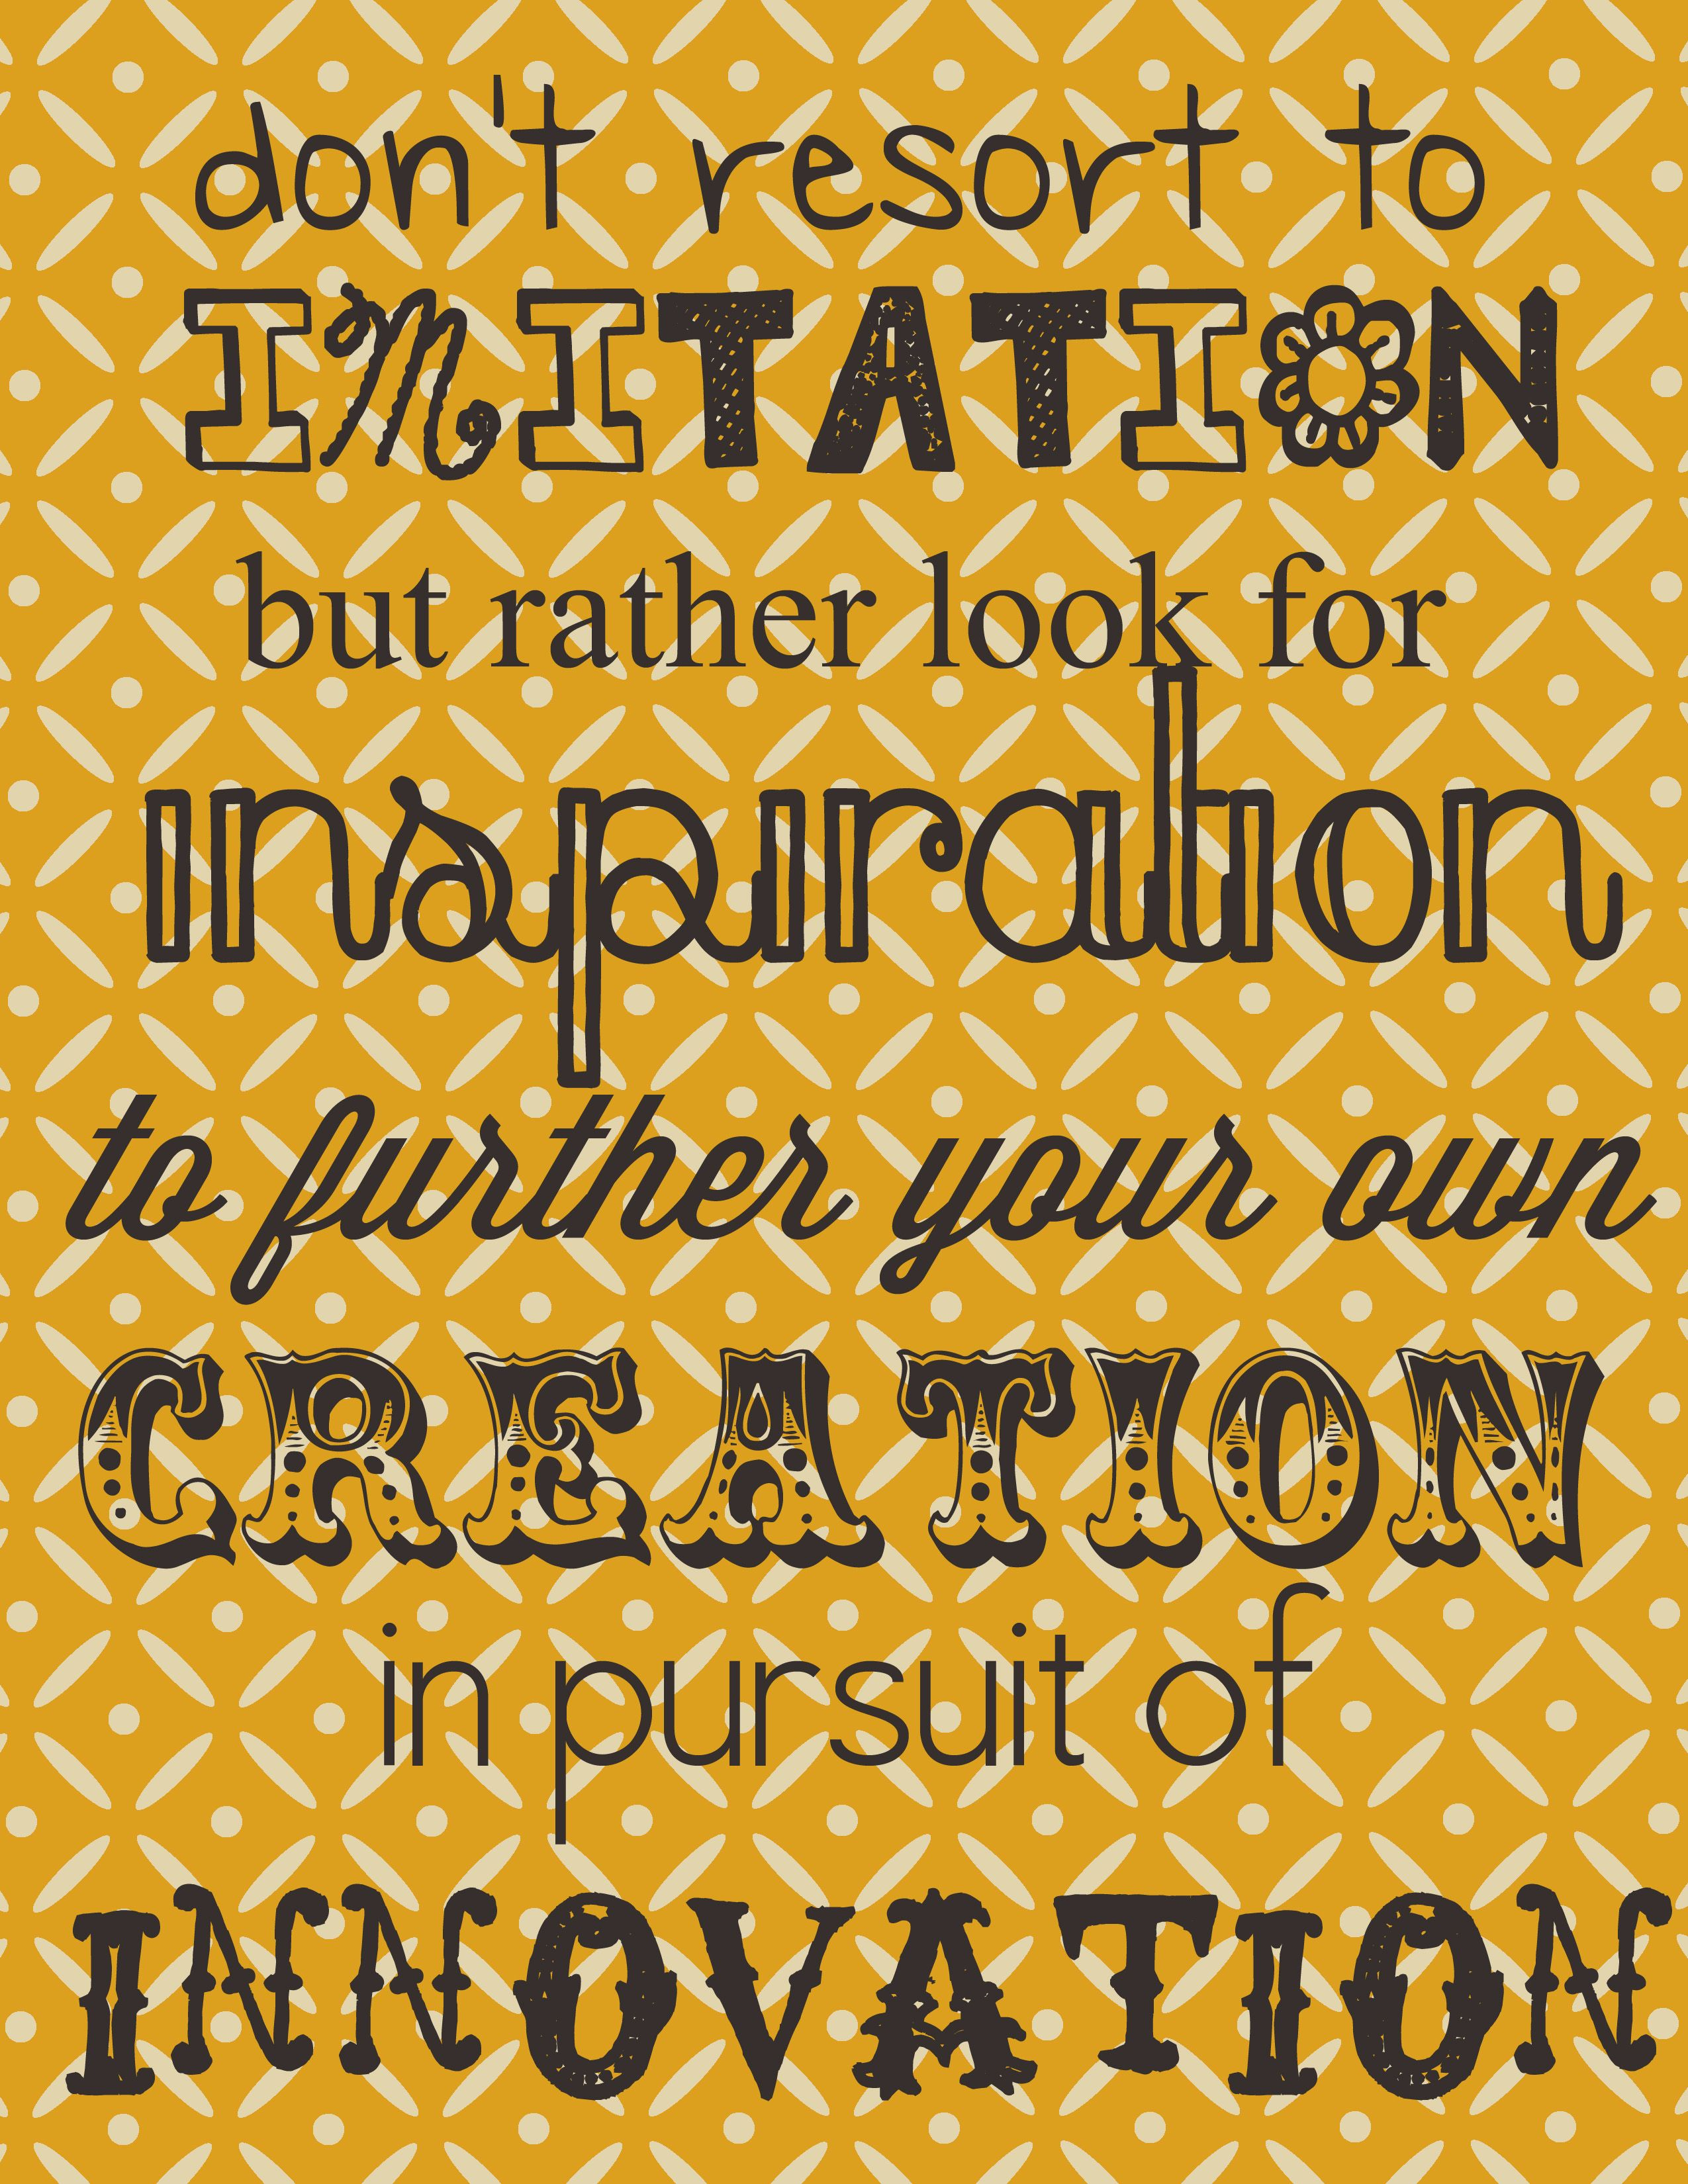 Best 25+ Imitation quotes ideas on Pinterest | Copying ...